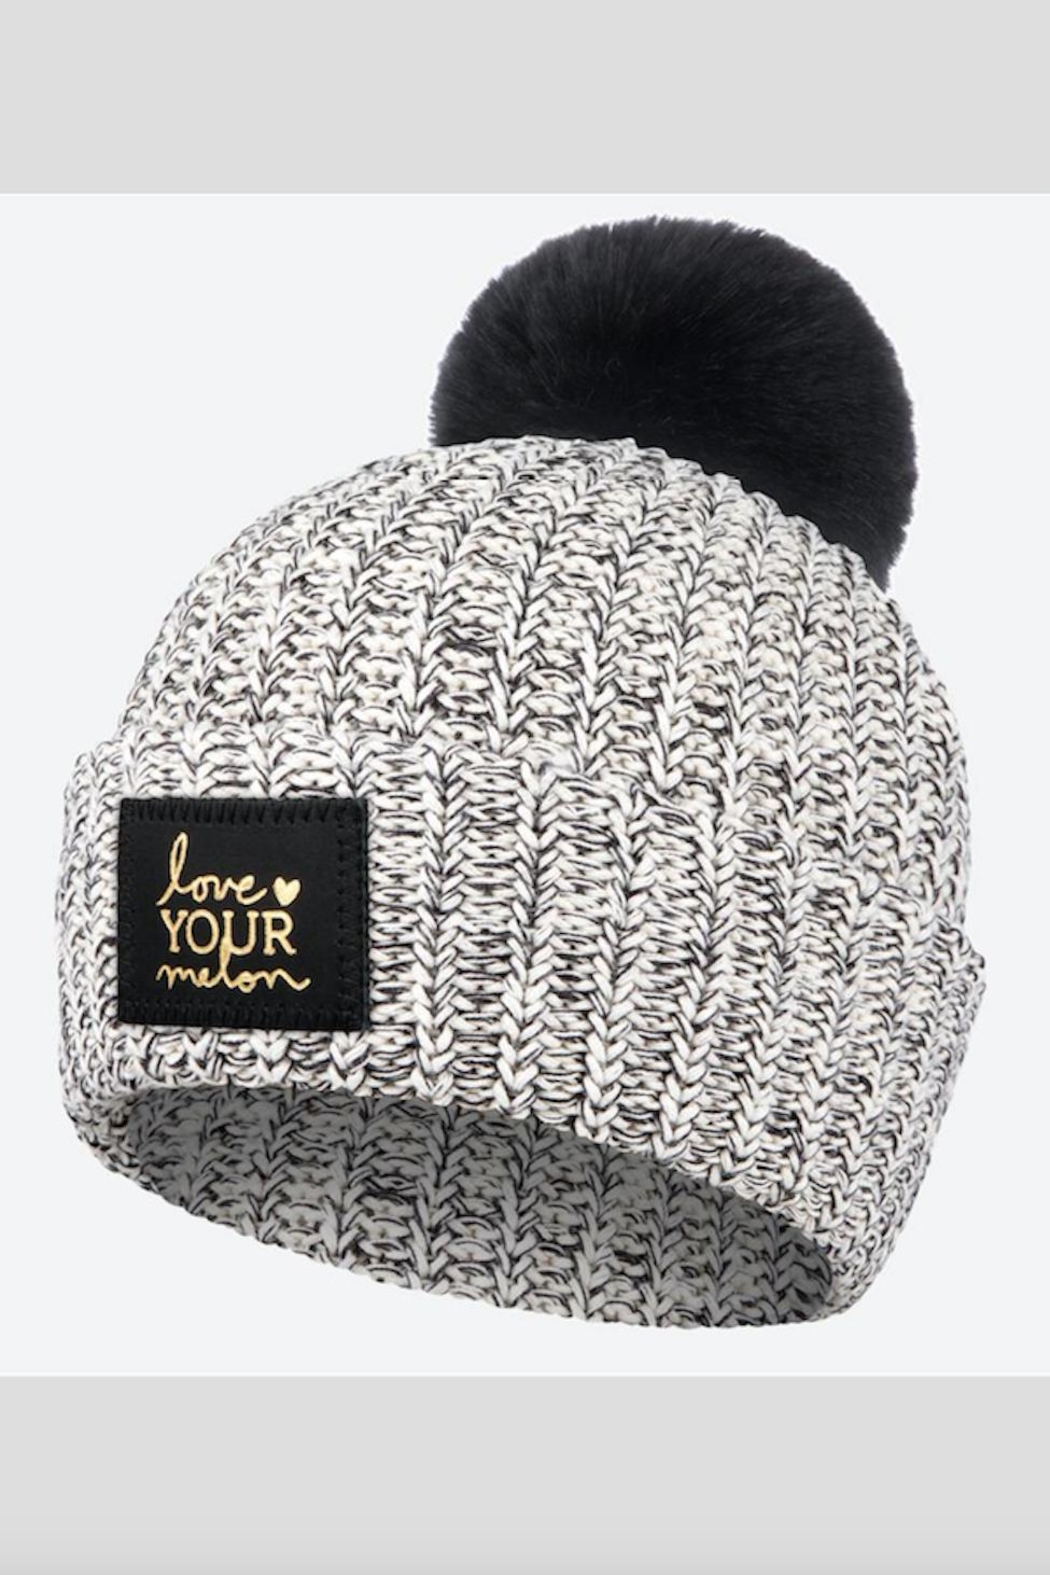 f94546450dc Love Your Melon Black-Speckled Foil Pom from New Jersey by Barefoot ...